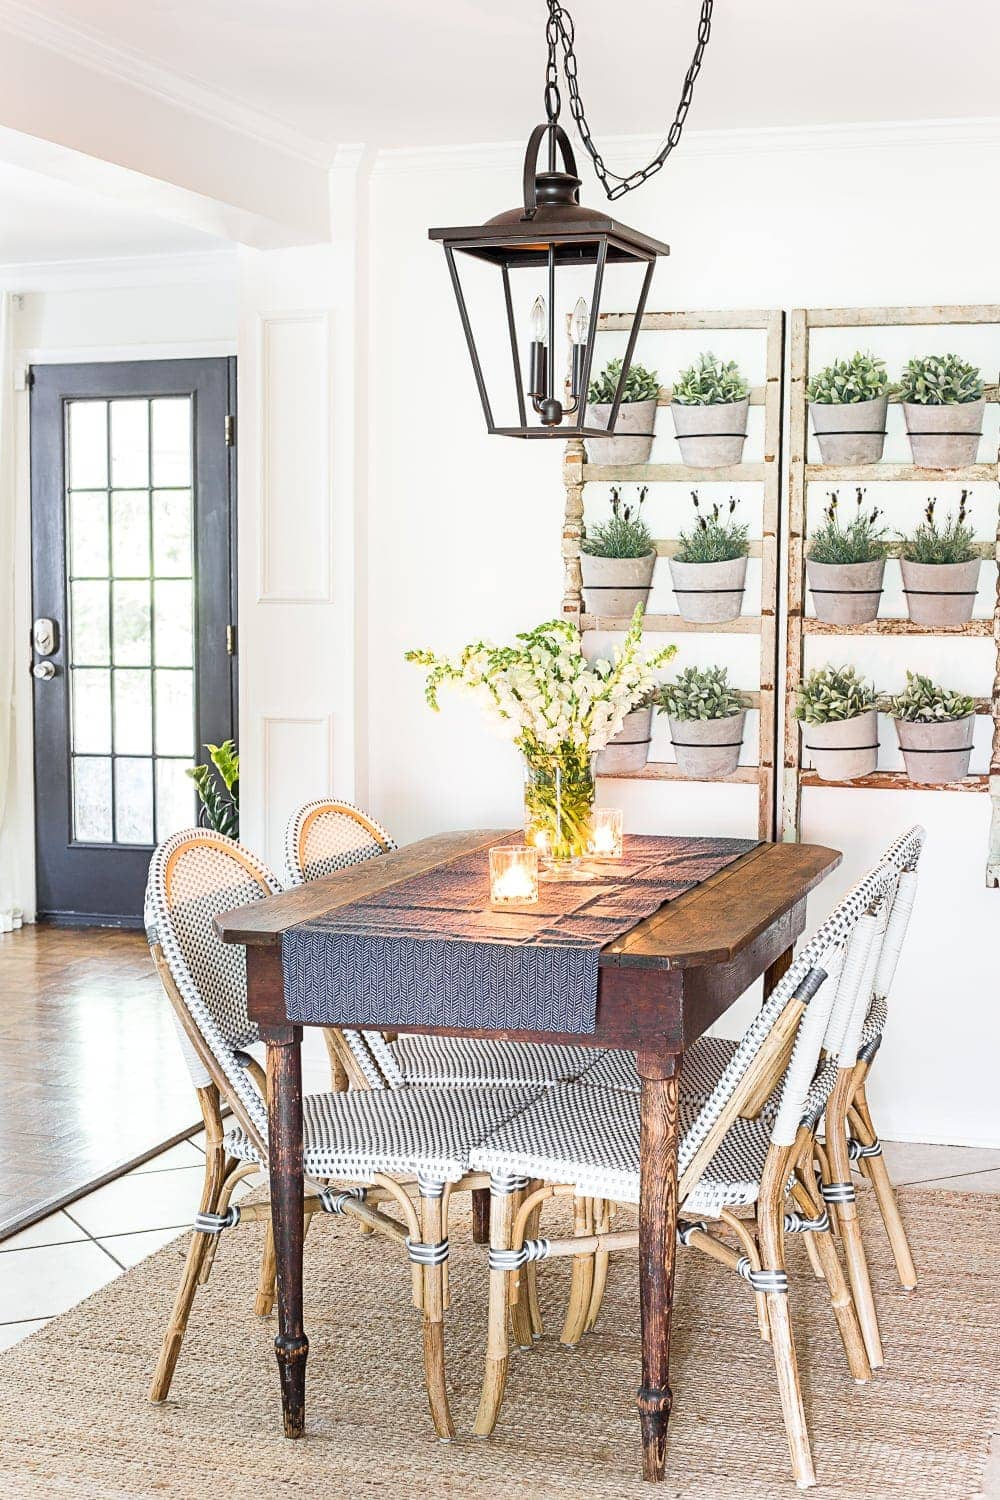 breakfast nook decorated for summer with a DIY wall planter made from antique banisters